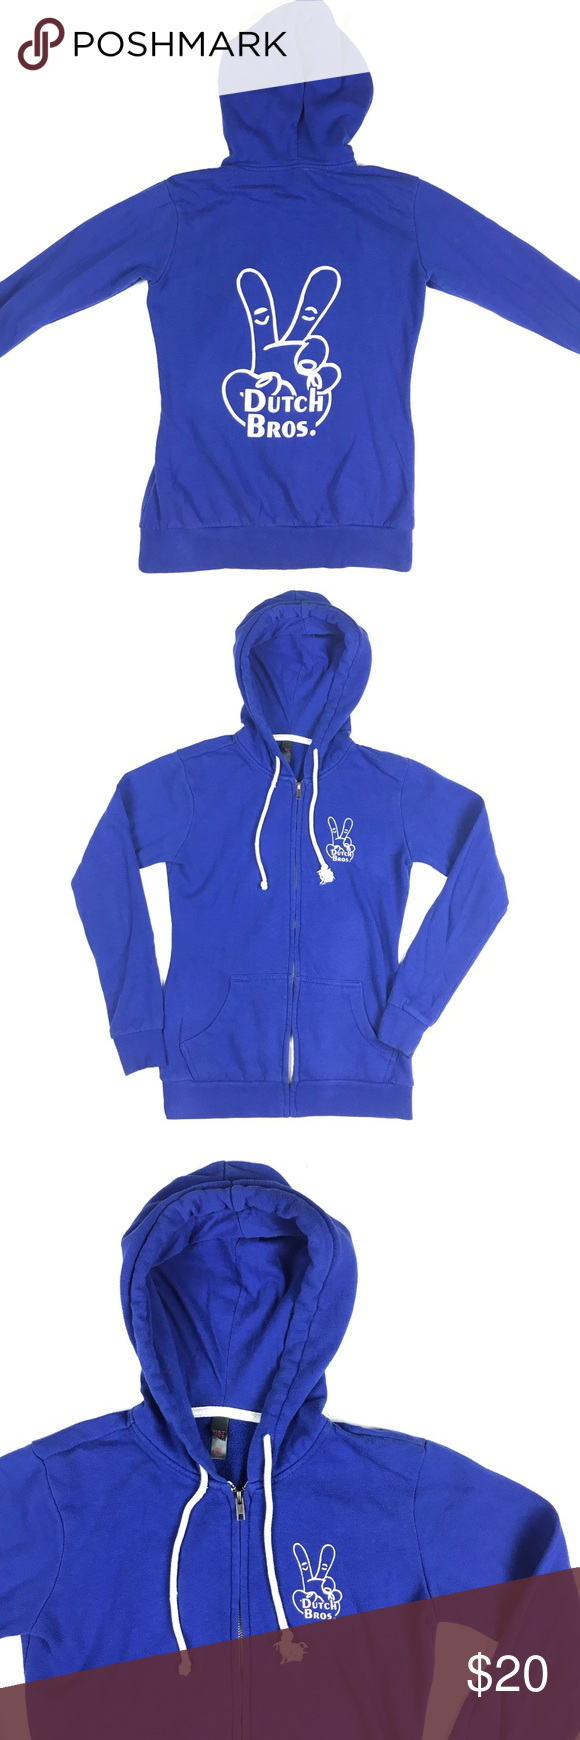 Dutch Bros Coffee Hoodie Peace Logo Zip Up Dutch Bros Brothers Coffee Hoodie Peace Logo Womens XS Zip Up   19121B Dutch Bros Tops Sweatshirts & Hoodies #dutchbros